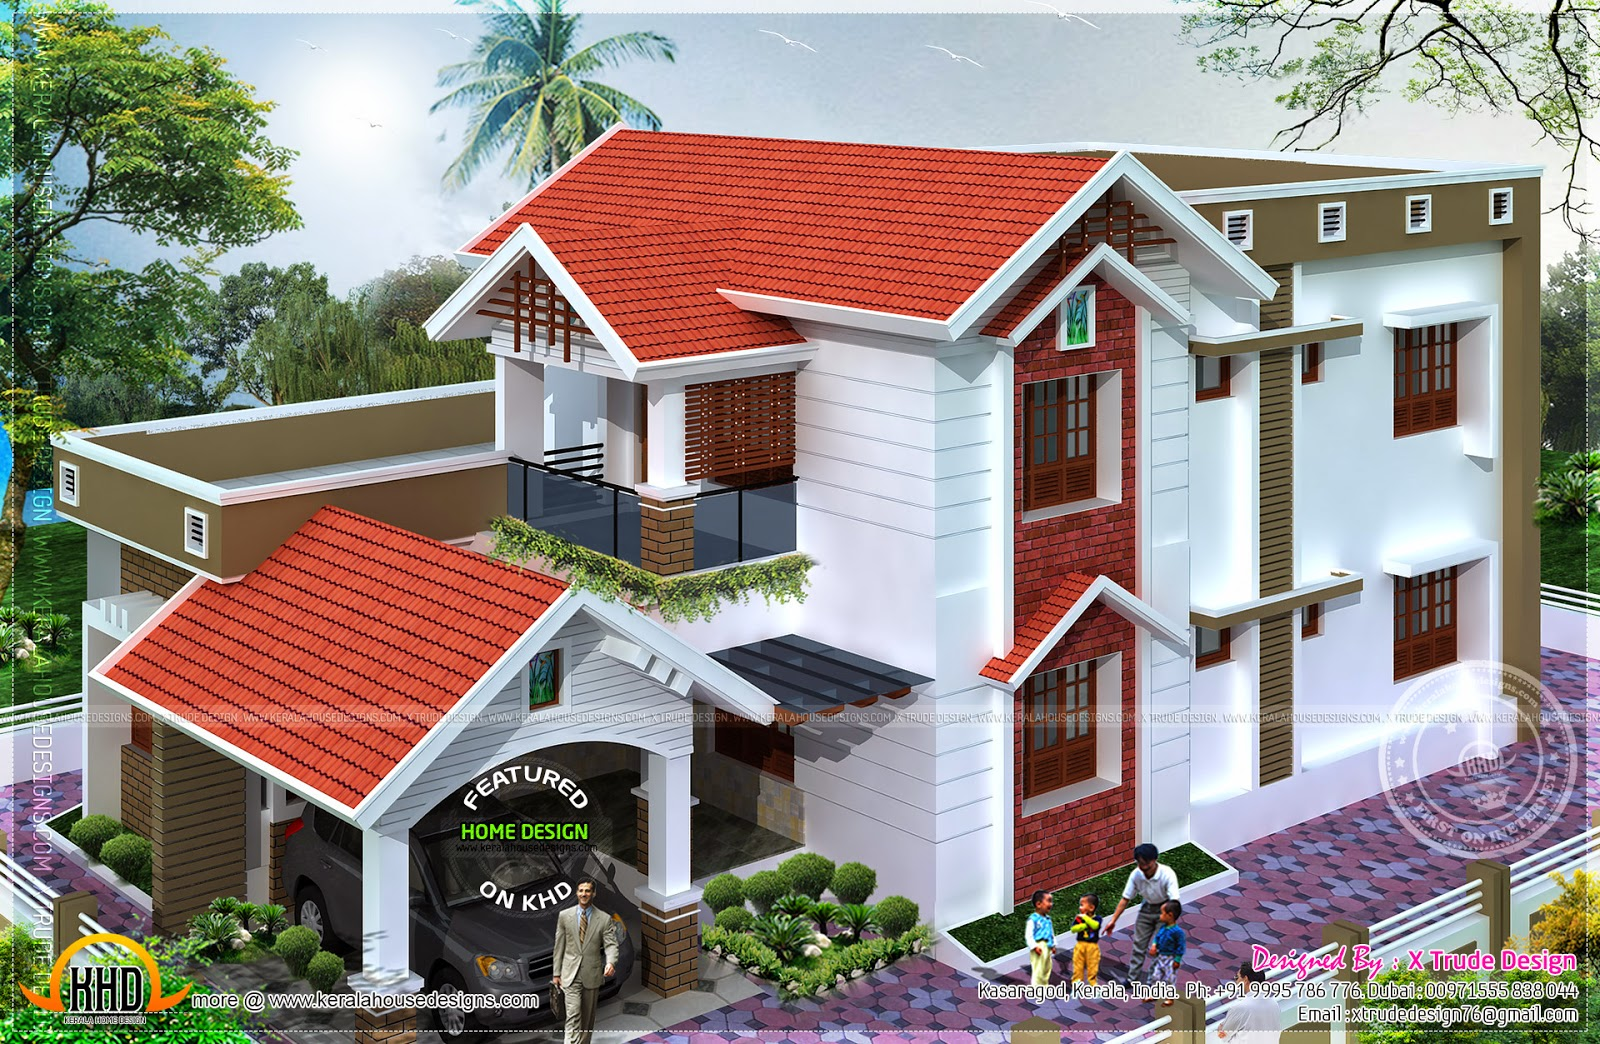 2401 square feet nice house renderings kerala home design and floor plans - Nice home designs ...